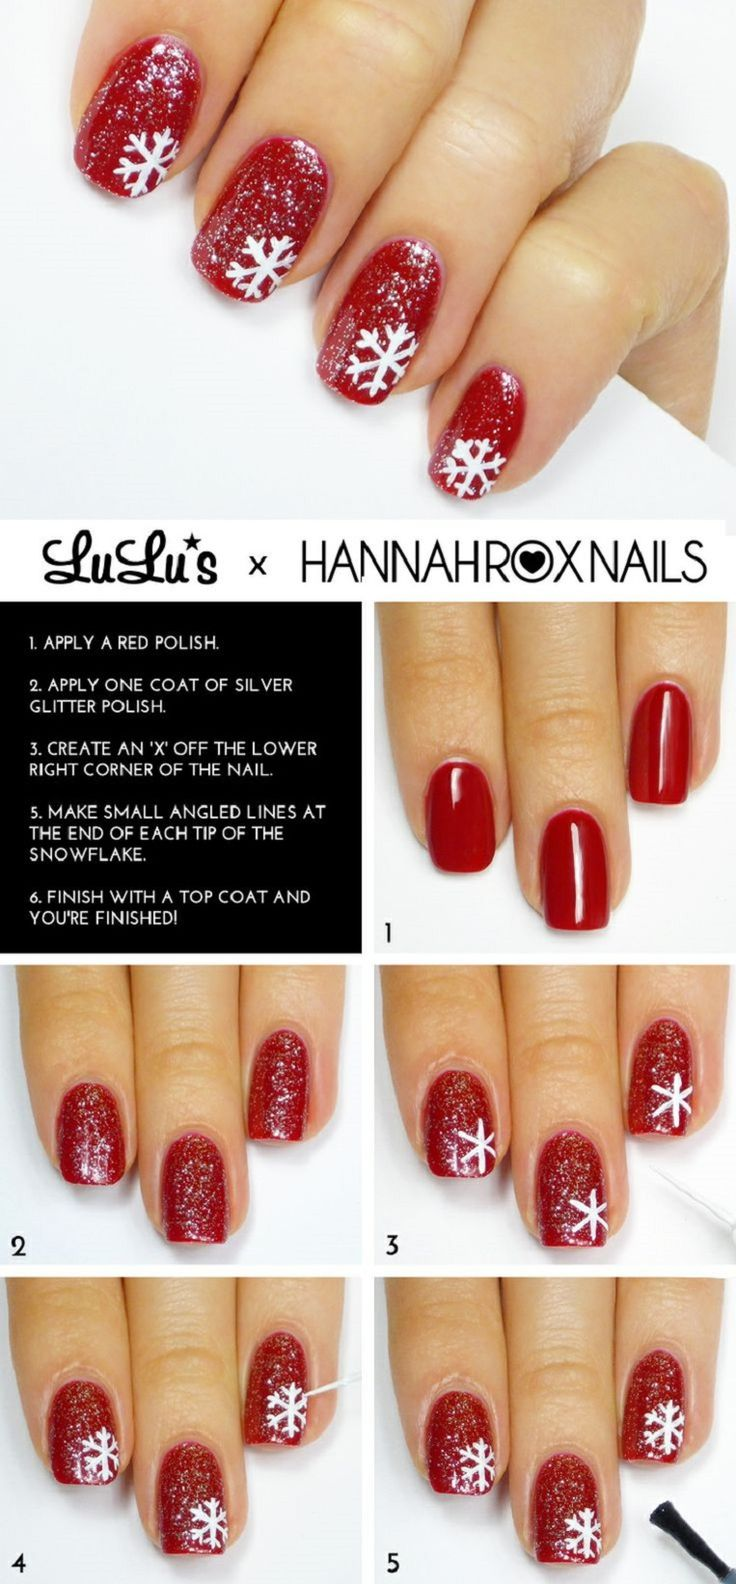 super cute snow flake nails!! love the red and white cant wait to start trying out Christmas decorations on my nails and toe nails!! i always wait till December at least!